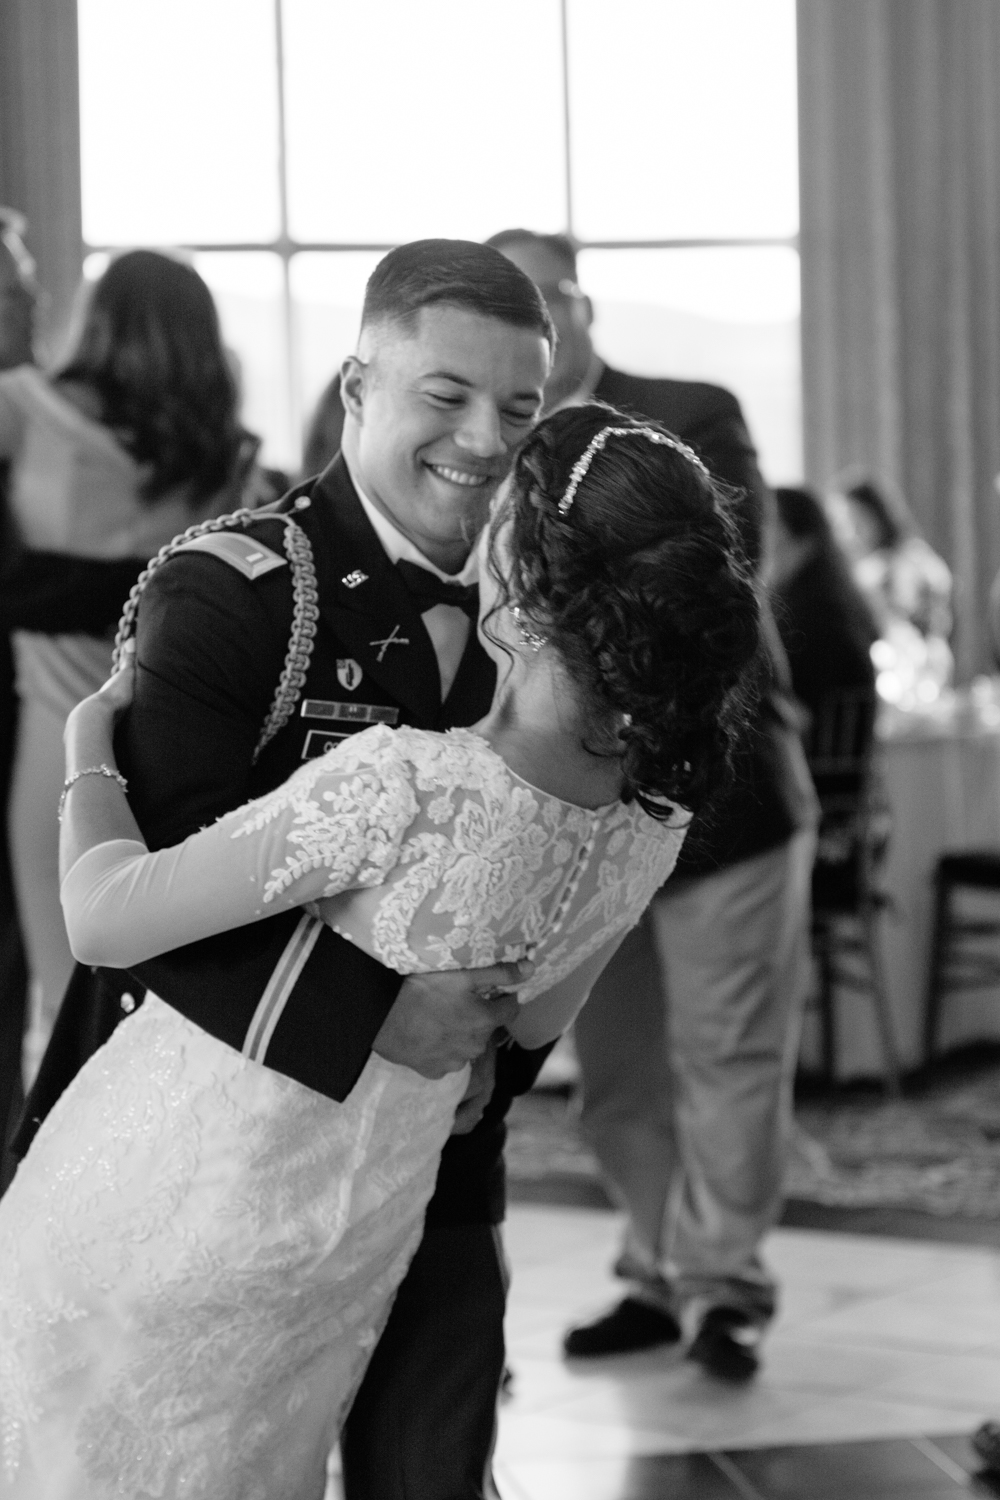 West Point Wedding- Mari + Dalton- New Jersey New York Wedding Photographer Olivia Christina Photo-181.jpg